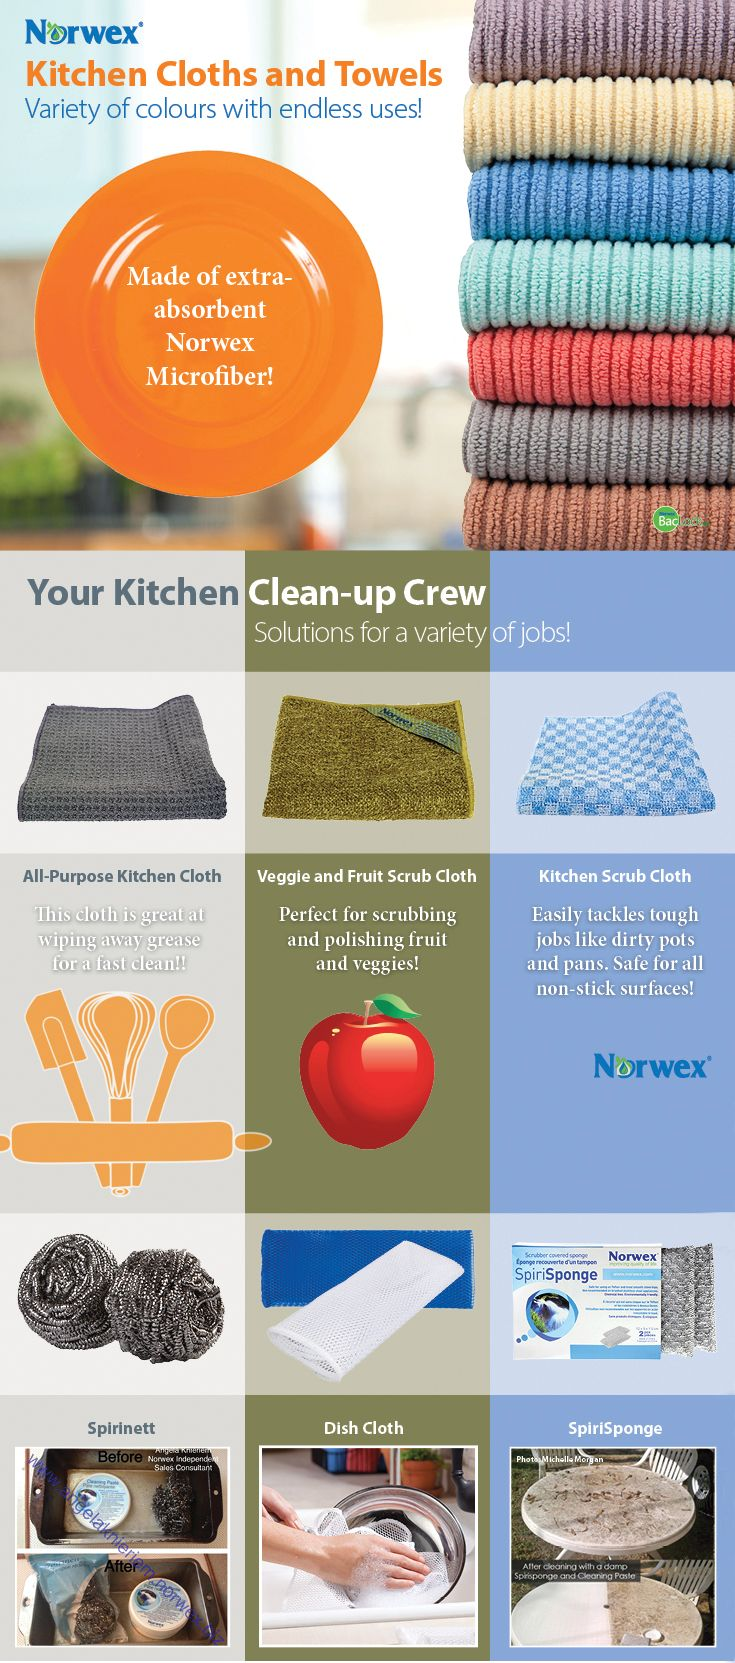 Kitchen Suggestions: All Purpose Kitchen Cloth Veggie and Fruit Scrub Cloth Kitchen Scrub Cloth Spirinett Dish Cloth Spirispong